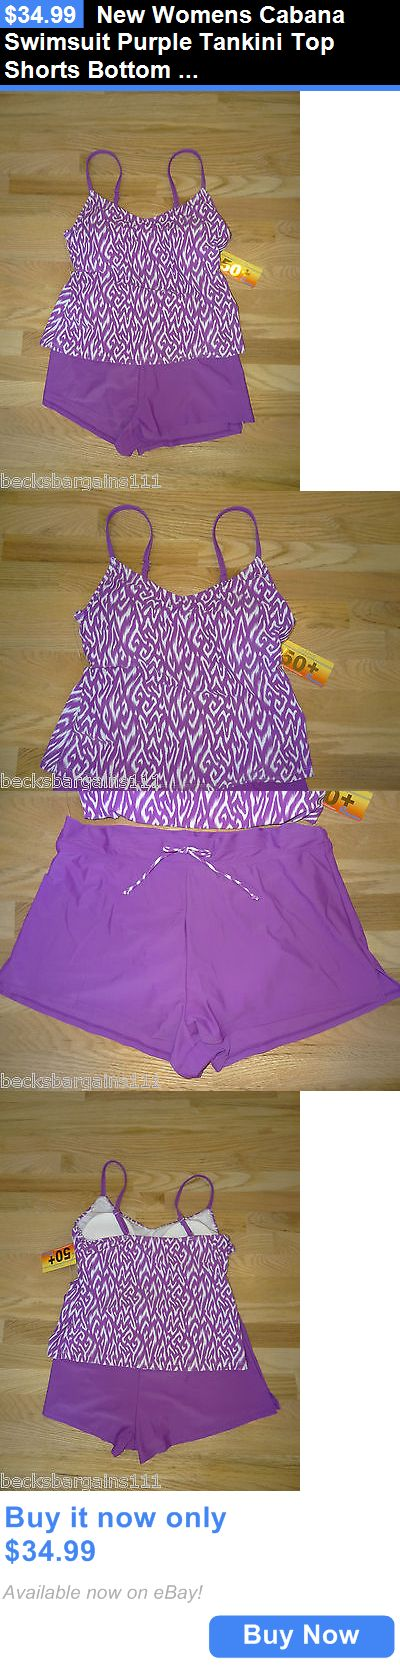 Women Swimwear: New Womens Cabana Swimsuit Purple Tankini Top Shorts Bottom Large 14 Nwt BUY IT NOW ONLY: $34.99